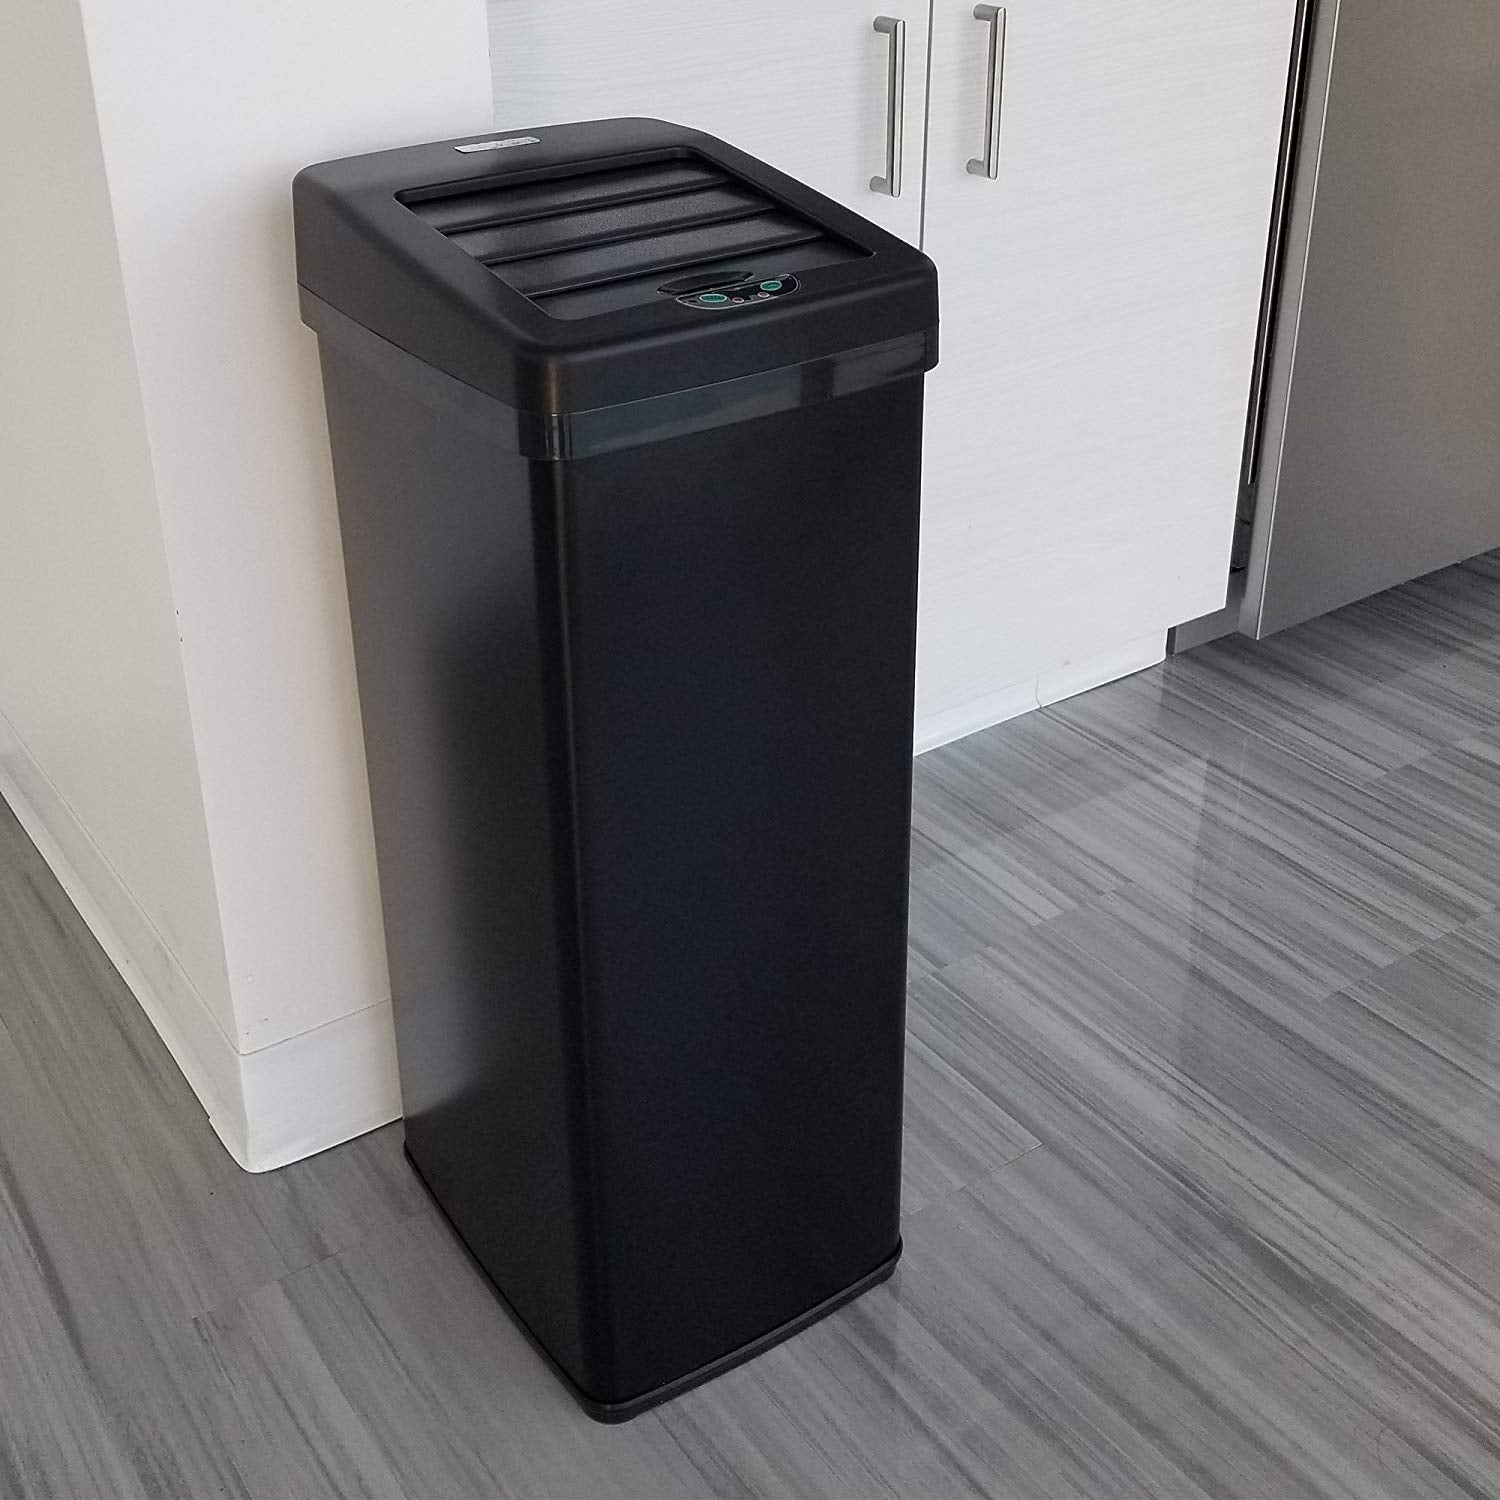 Shop ITouchless Automatic Sensor Sliding Lid Steel Trash Can, 14 Gallon /  52 Liter U2013 Black U2013 Kitchen Trash Can   Free Shipping Today   Overstock    2495142